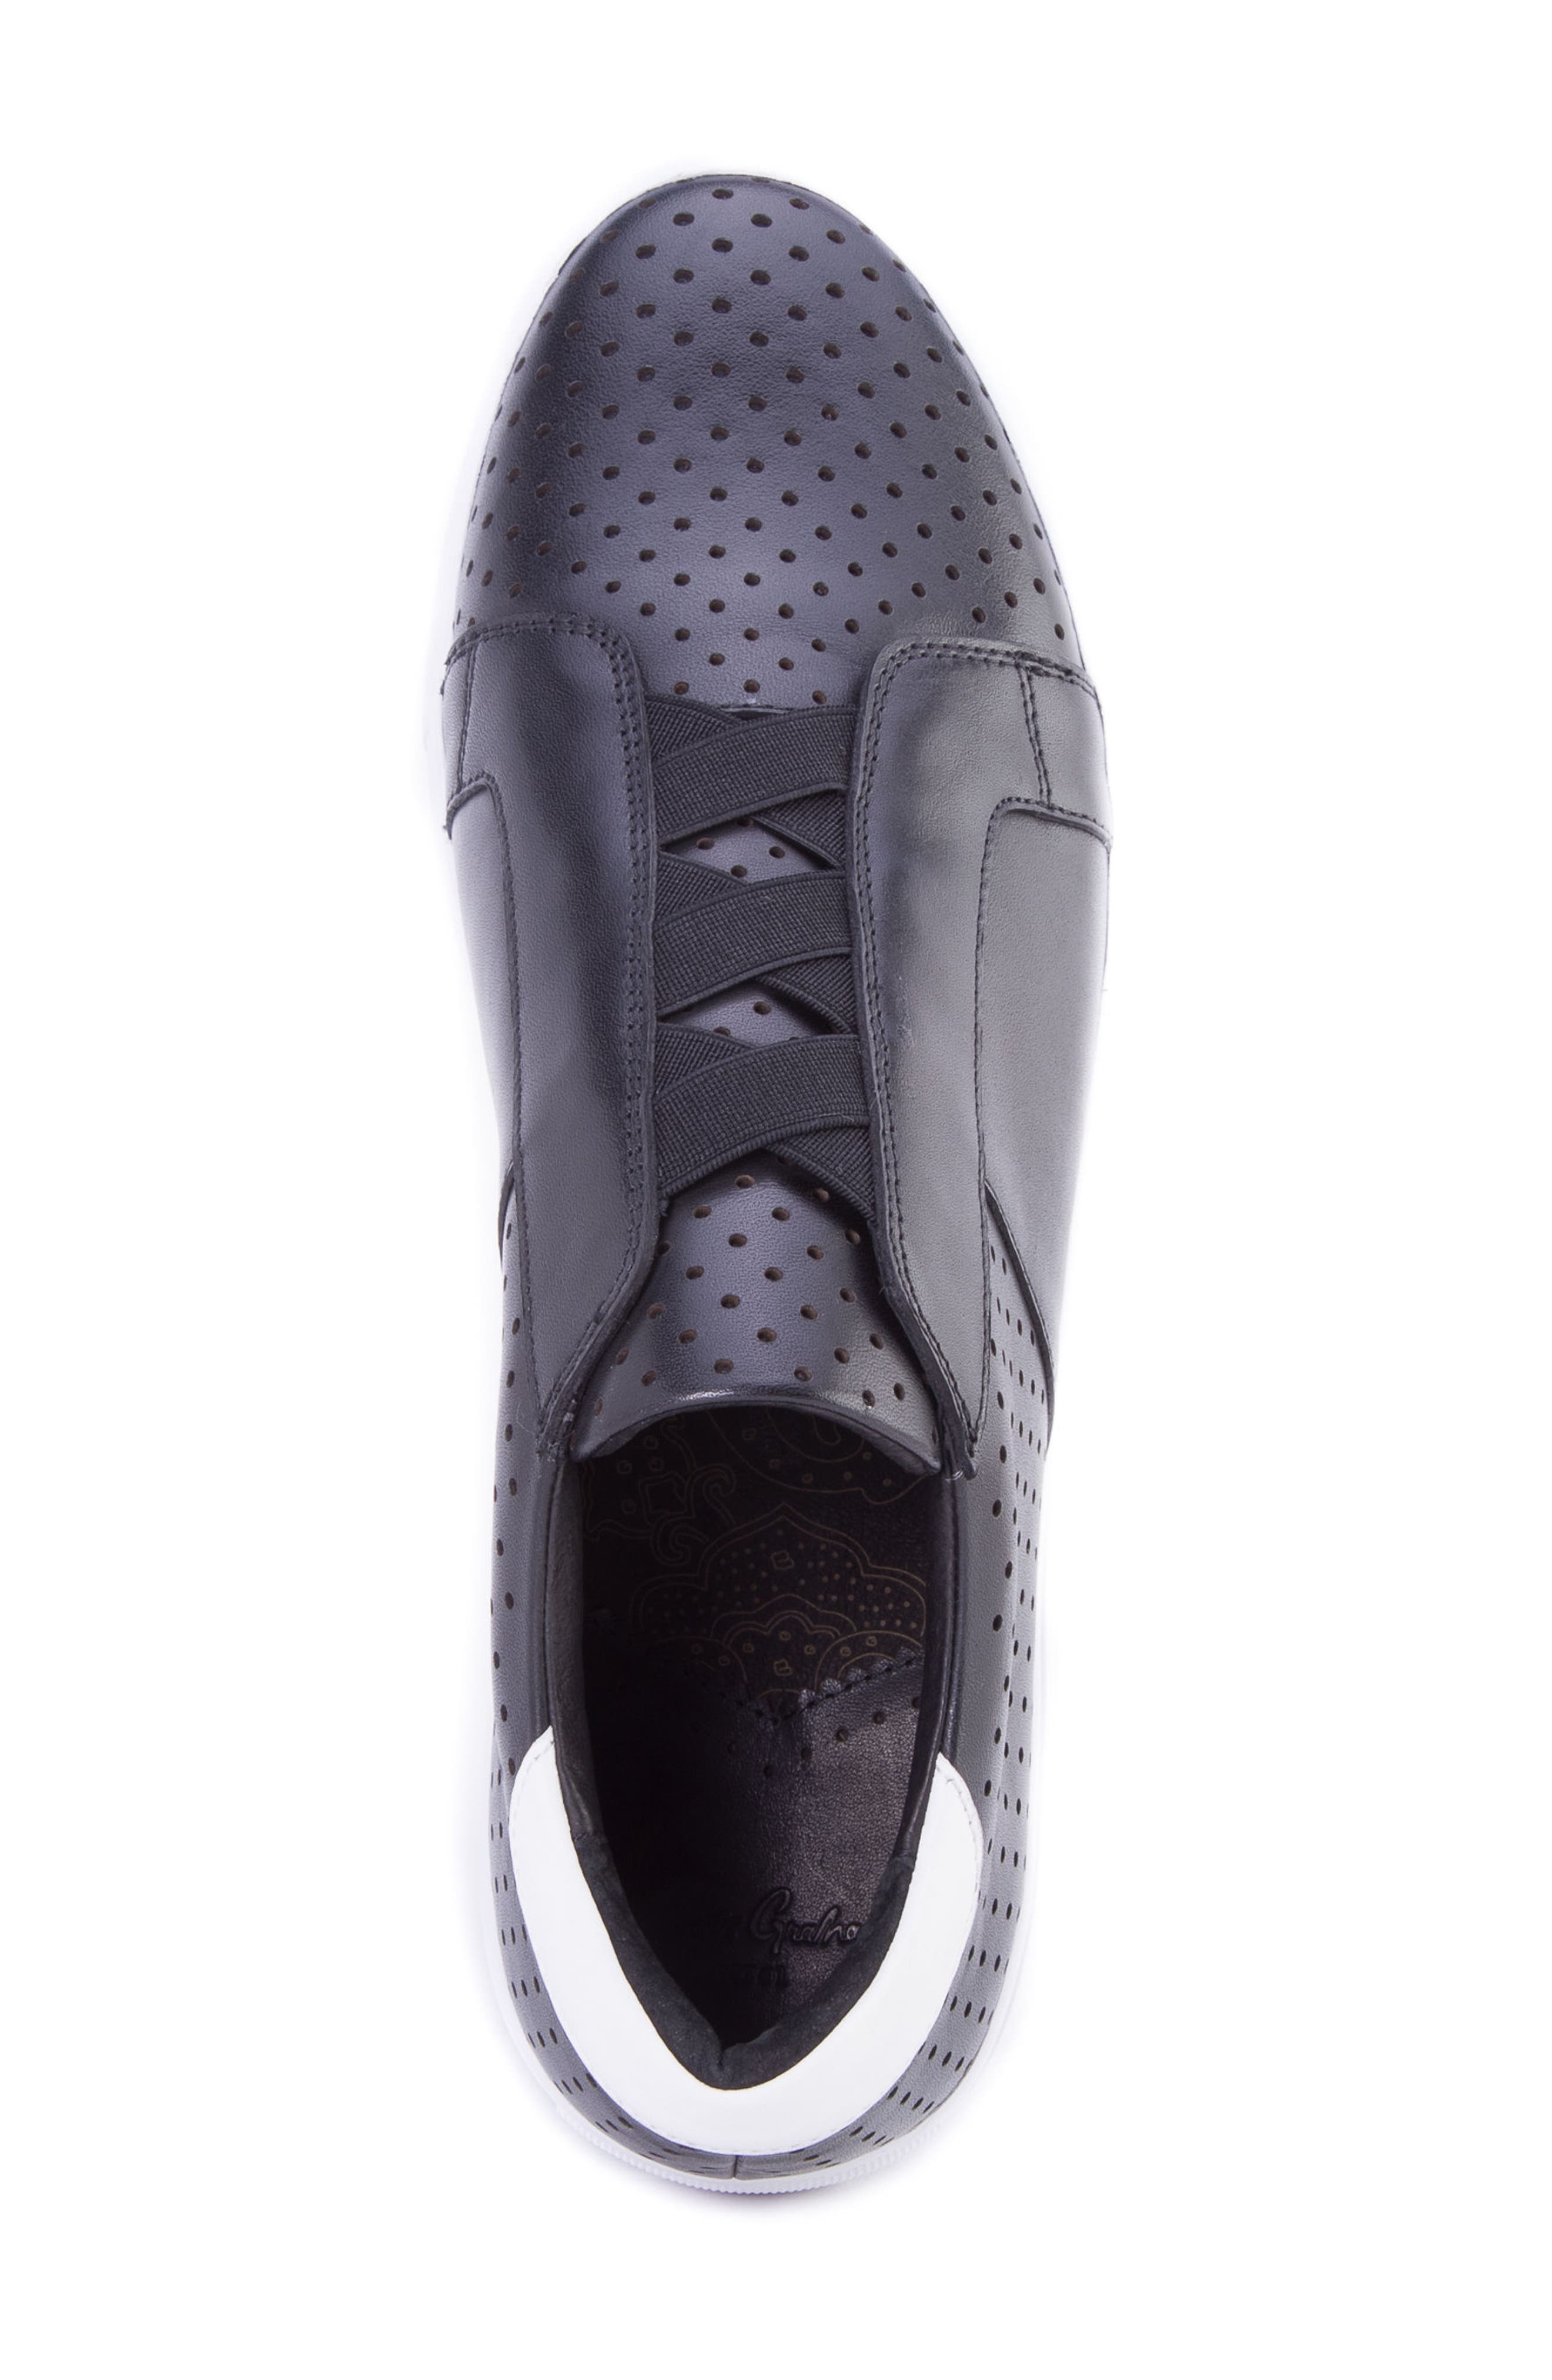 Rowley Perforated Laceless Sneaker,                             Alternate thumbnail 5, color,                             BLACK LEATHER